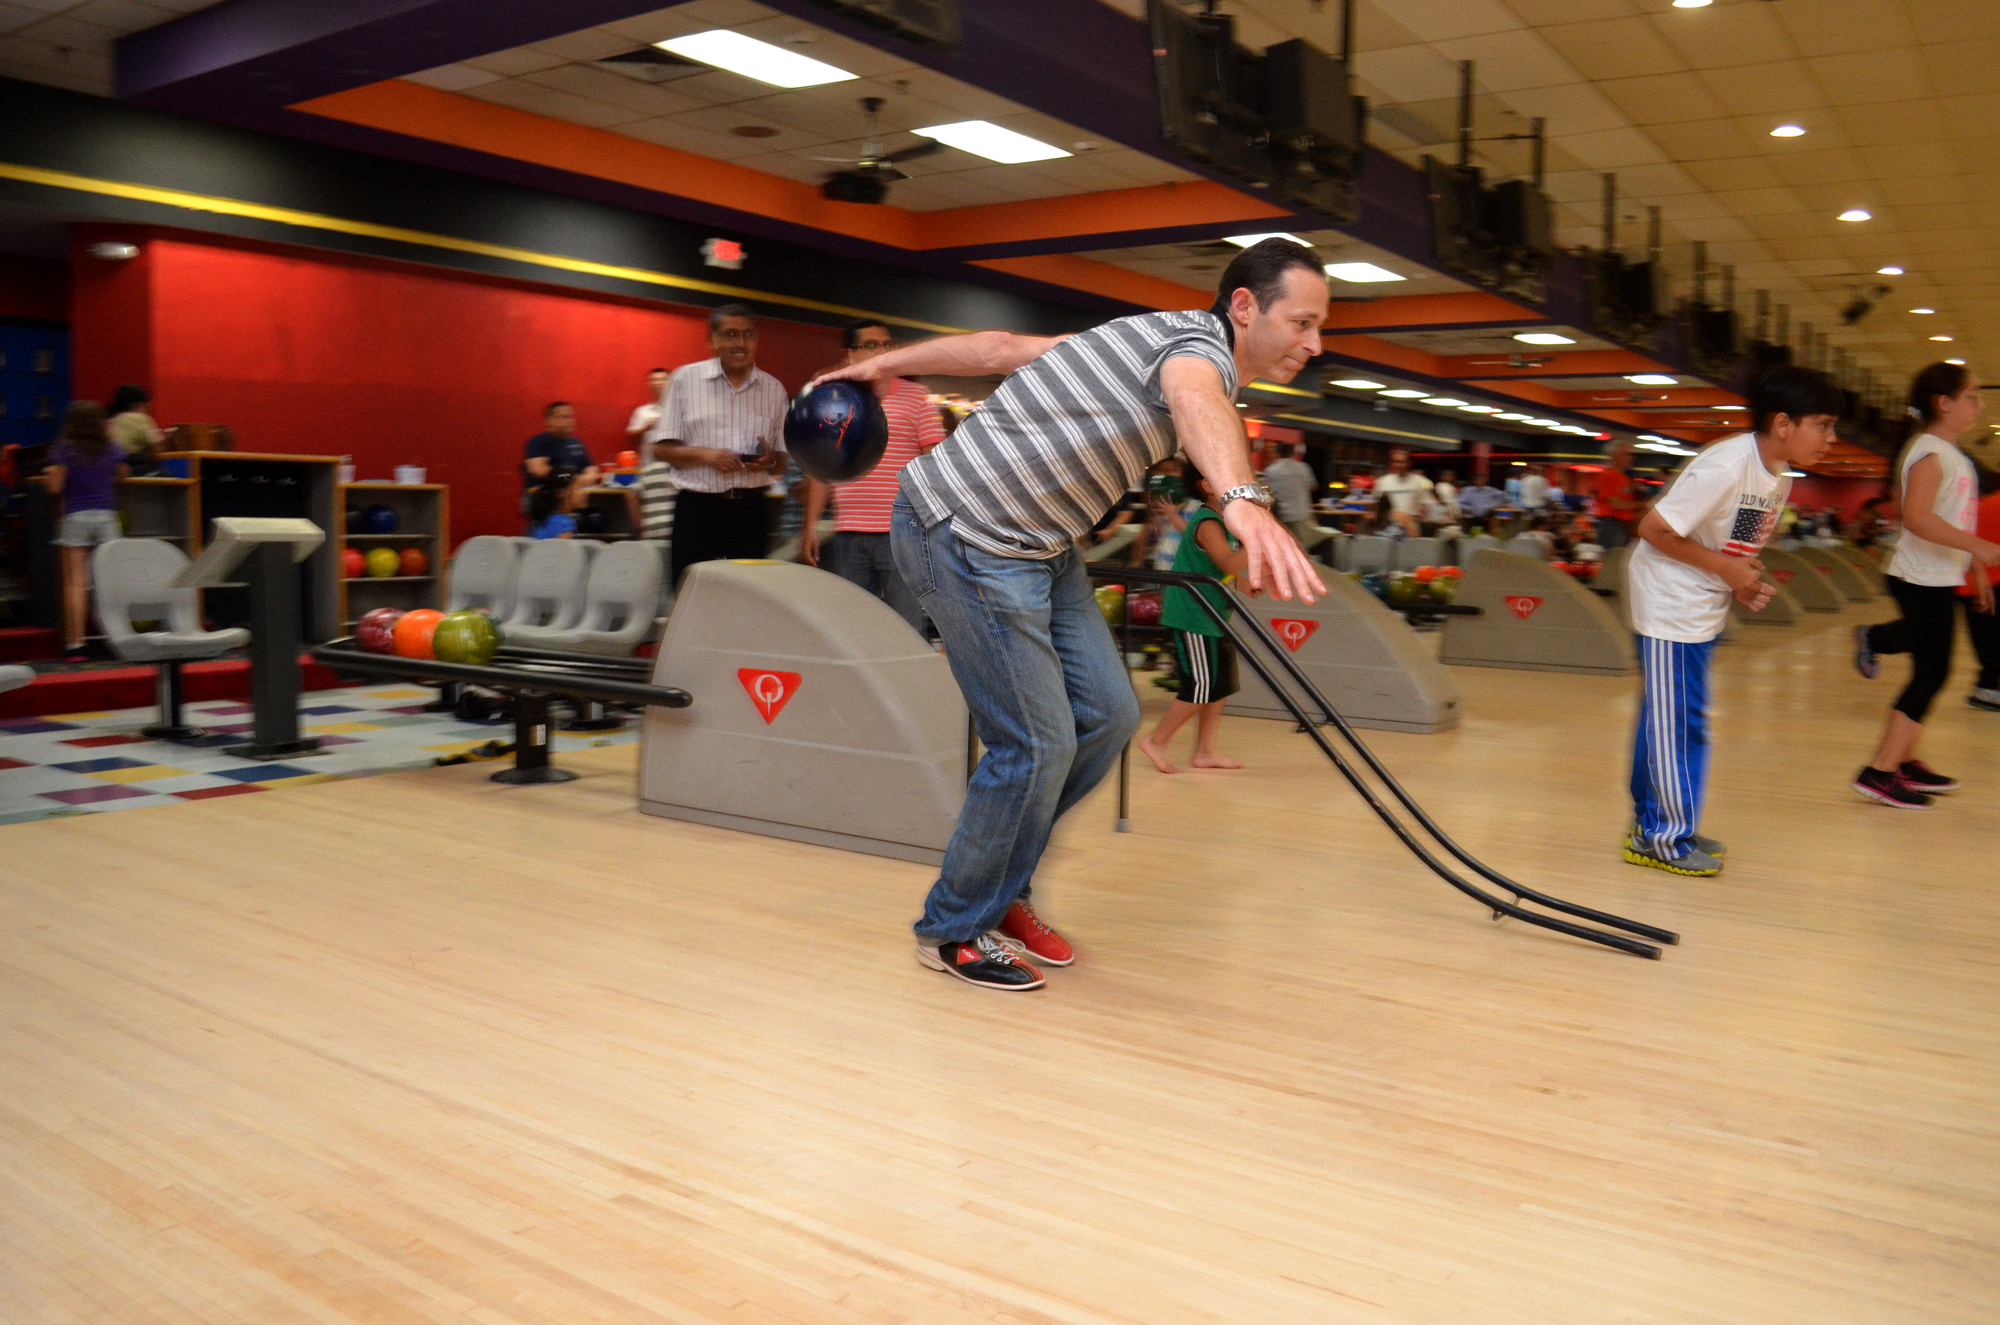 Adam Ashe lined up his shot at the Barnum Woods PTA�s Father�s Day bowling night.